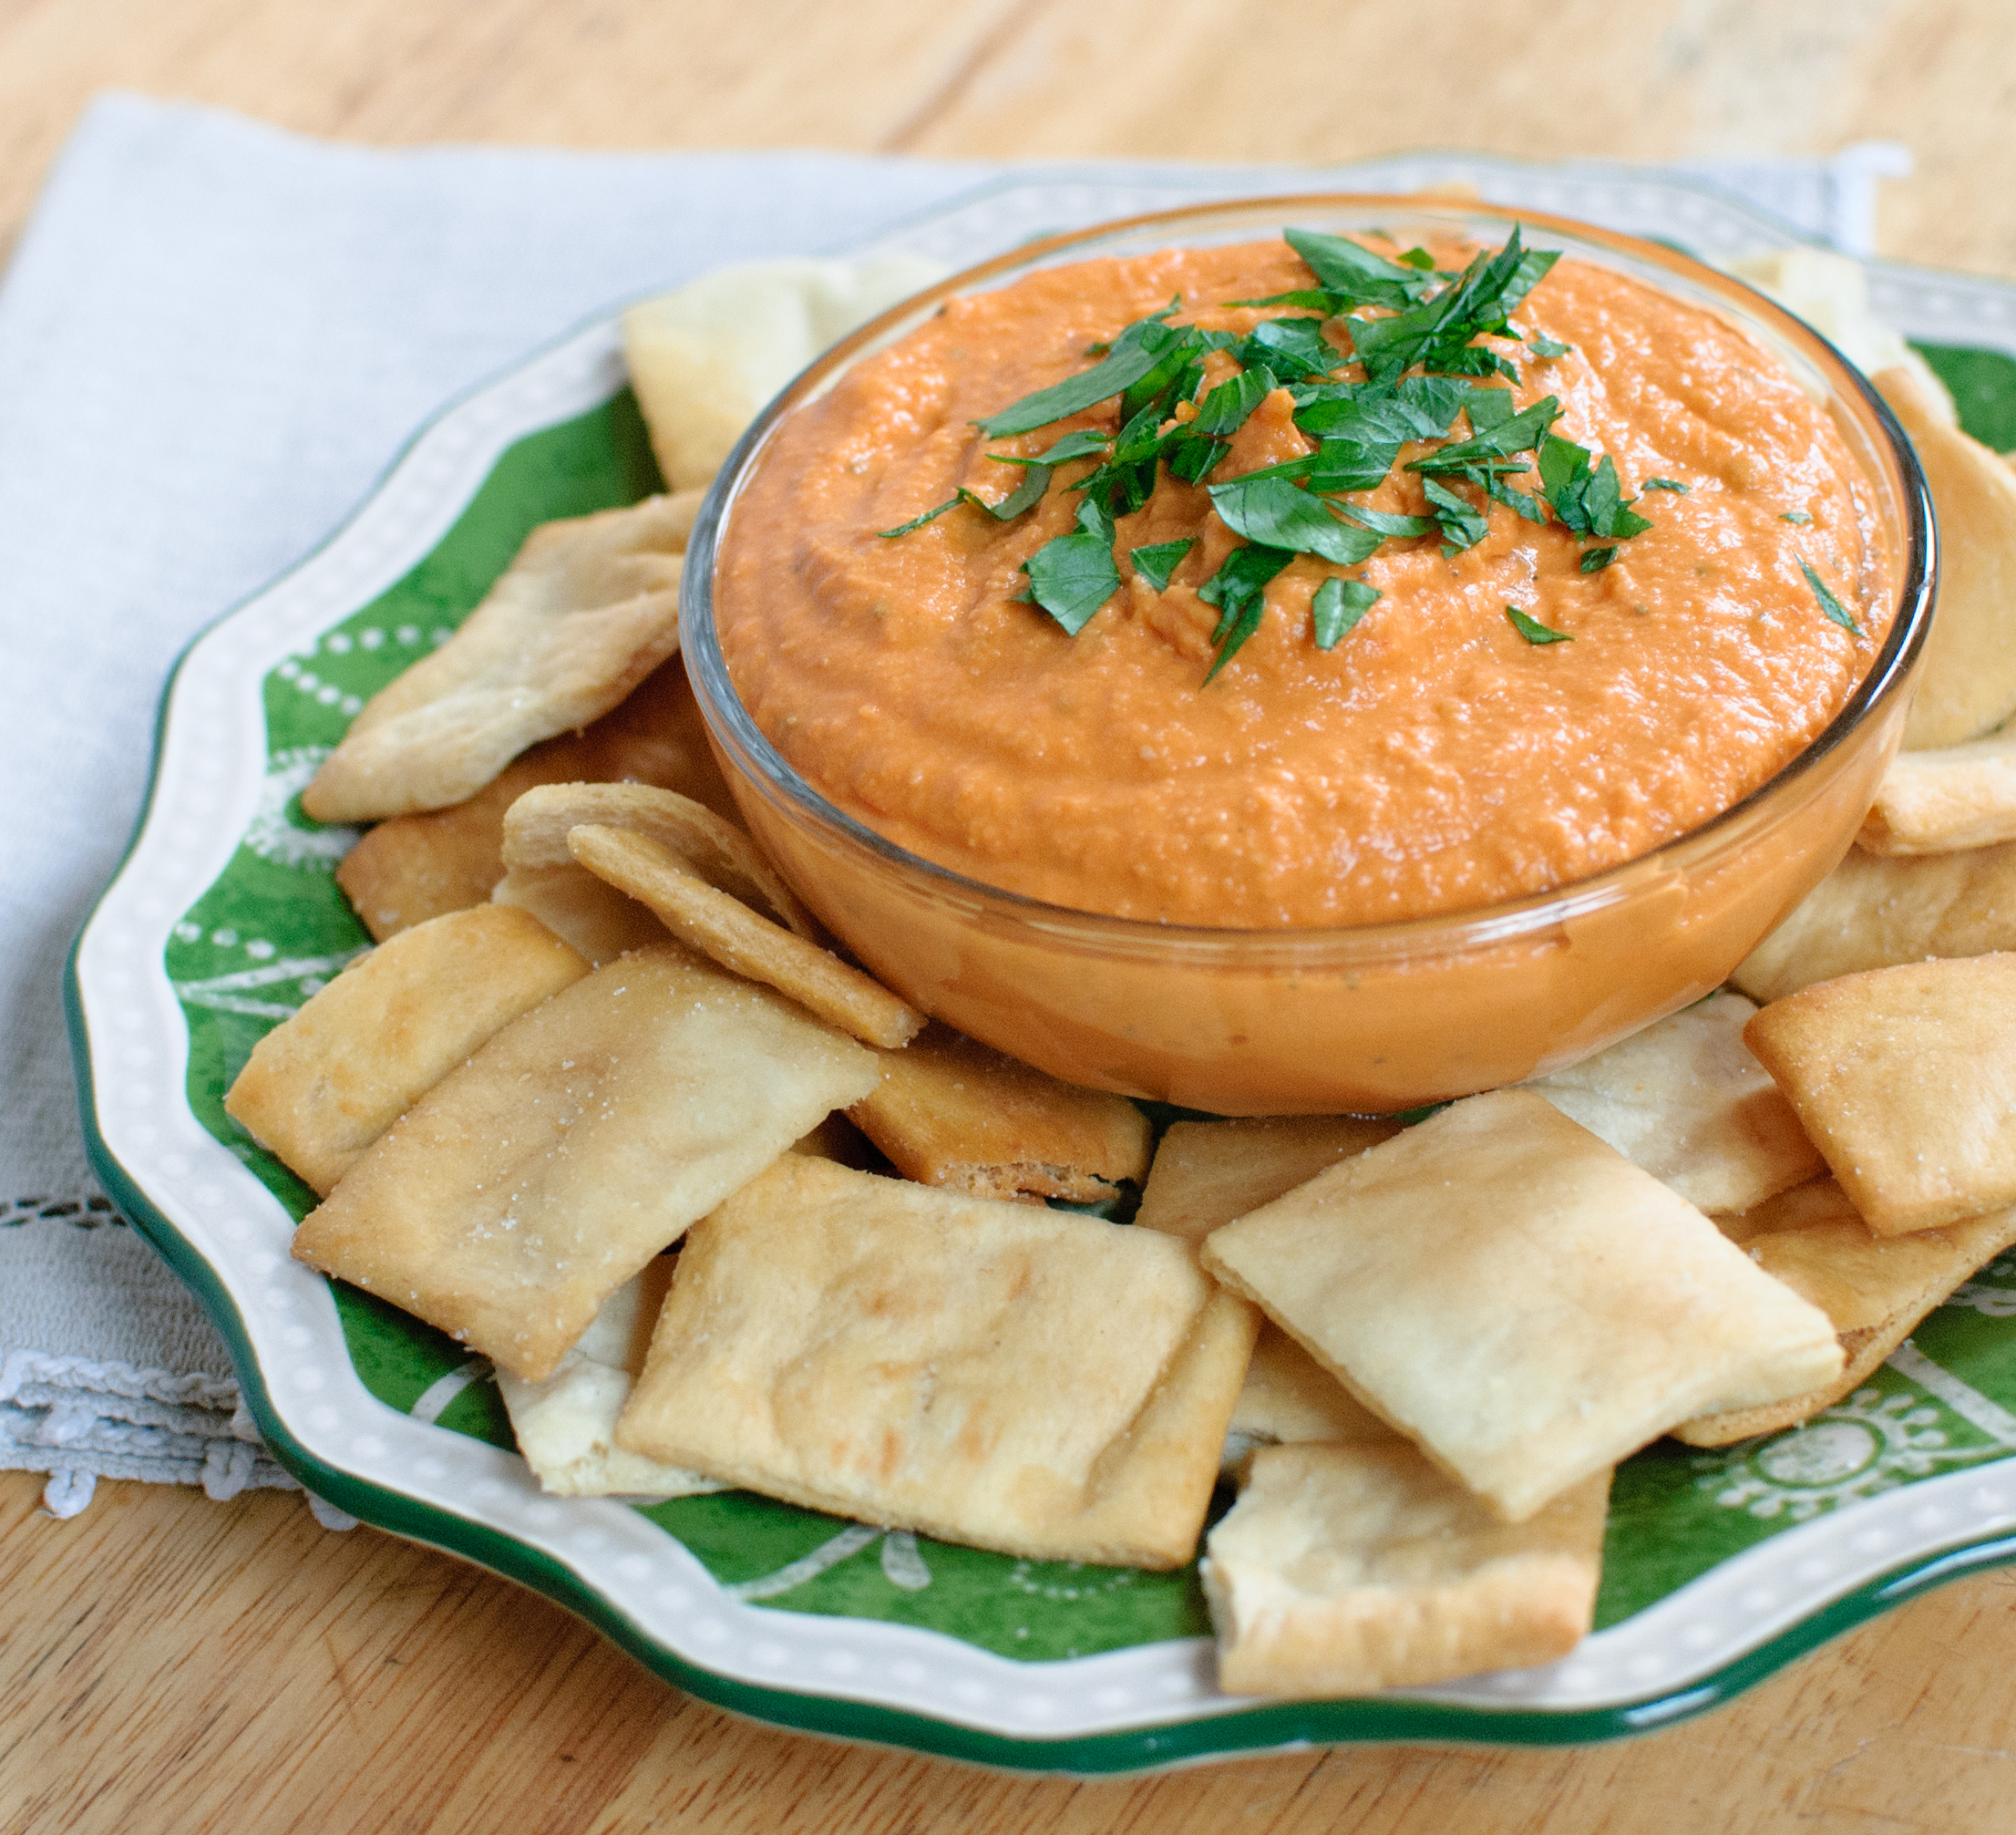 Roasted red pepper hummus baked in for Roasted red peppers hummus